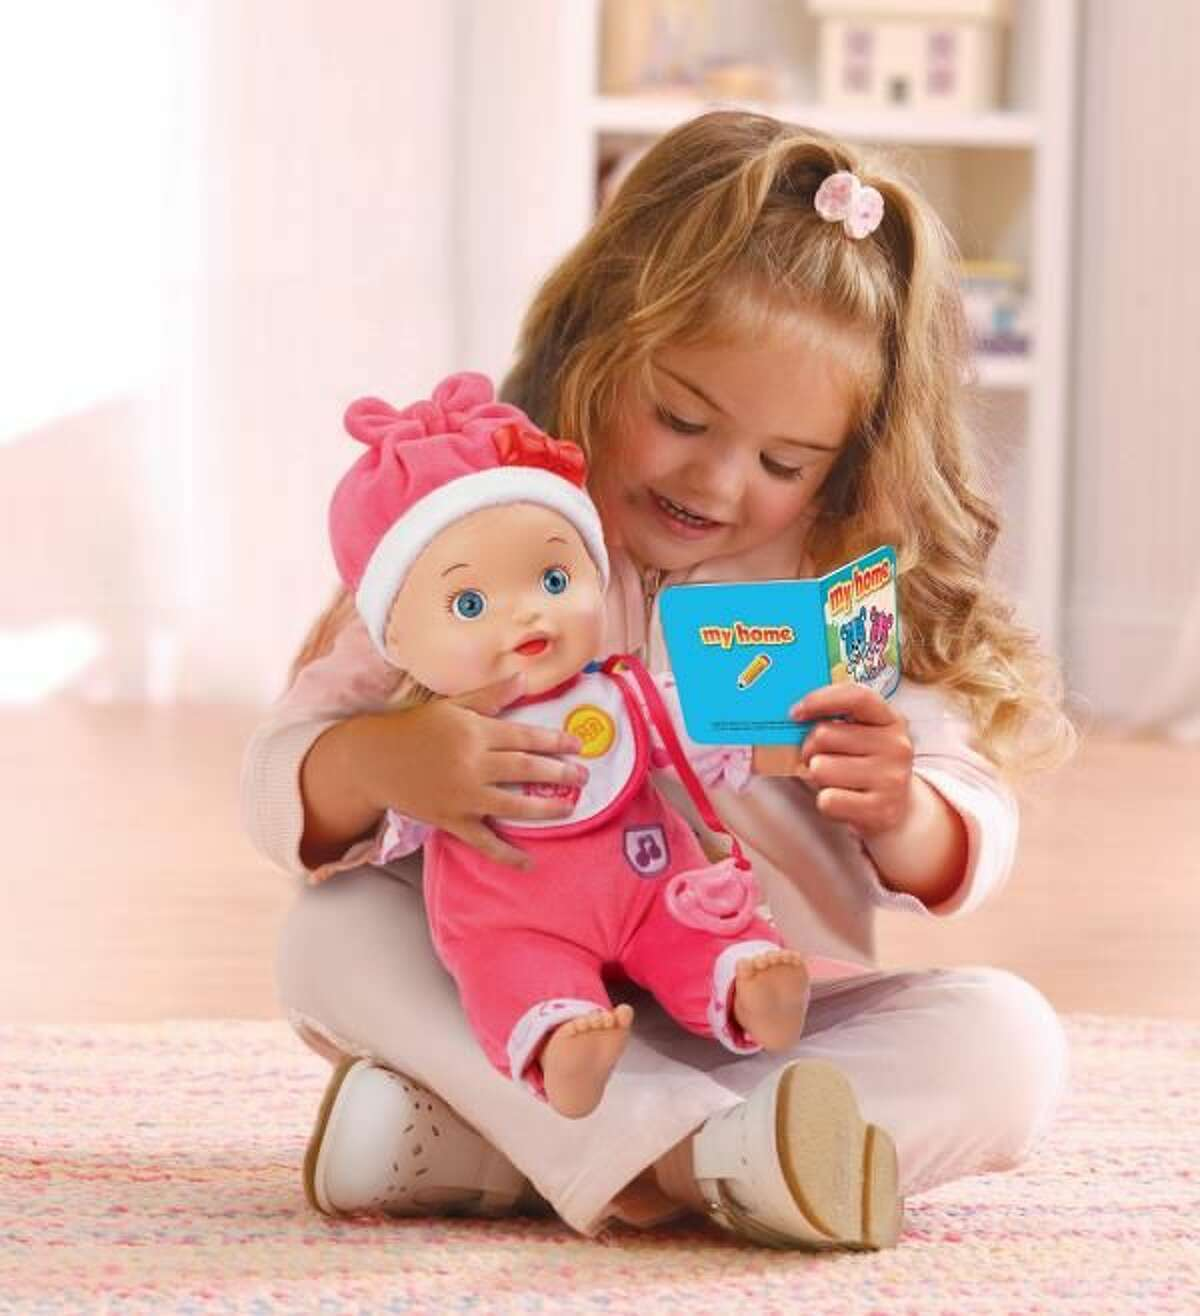 Not Your Mother's Baby Doll: Technology Puts a Twist on Classic Toys